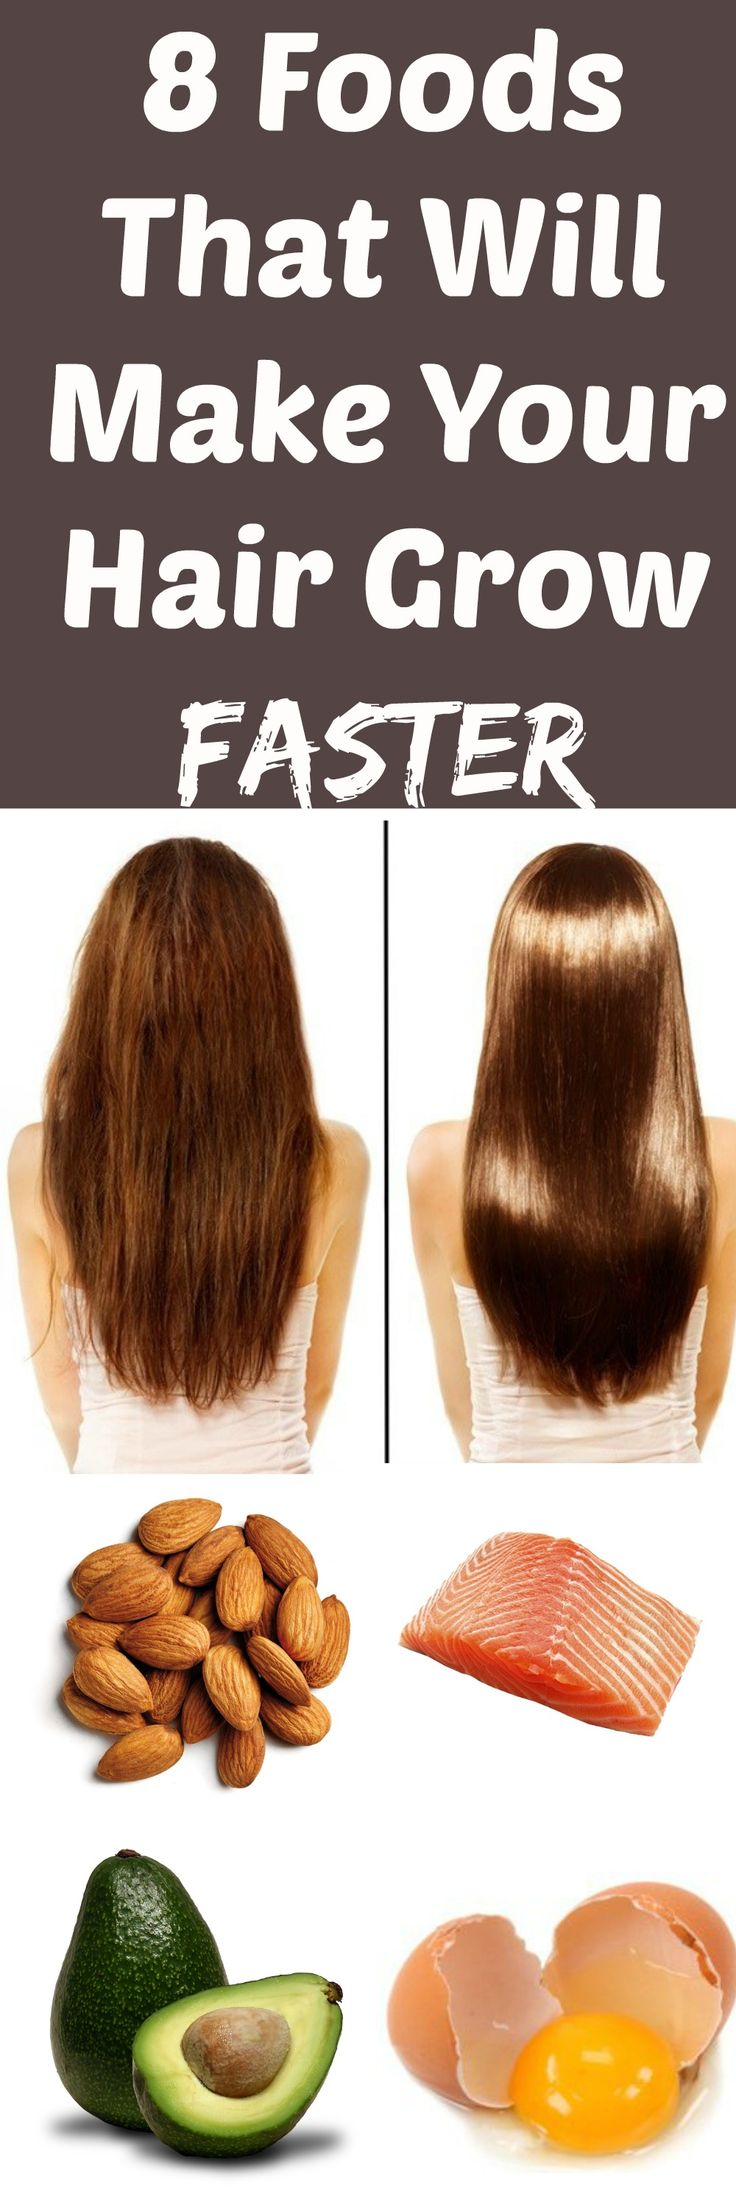 How Do You Make Hair Grow Faster Naturally